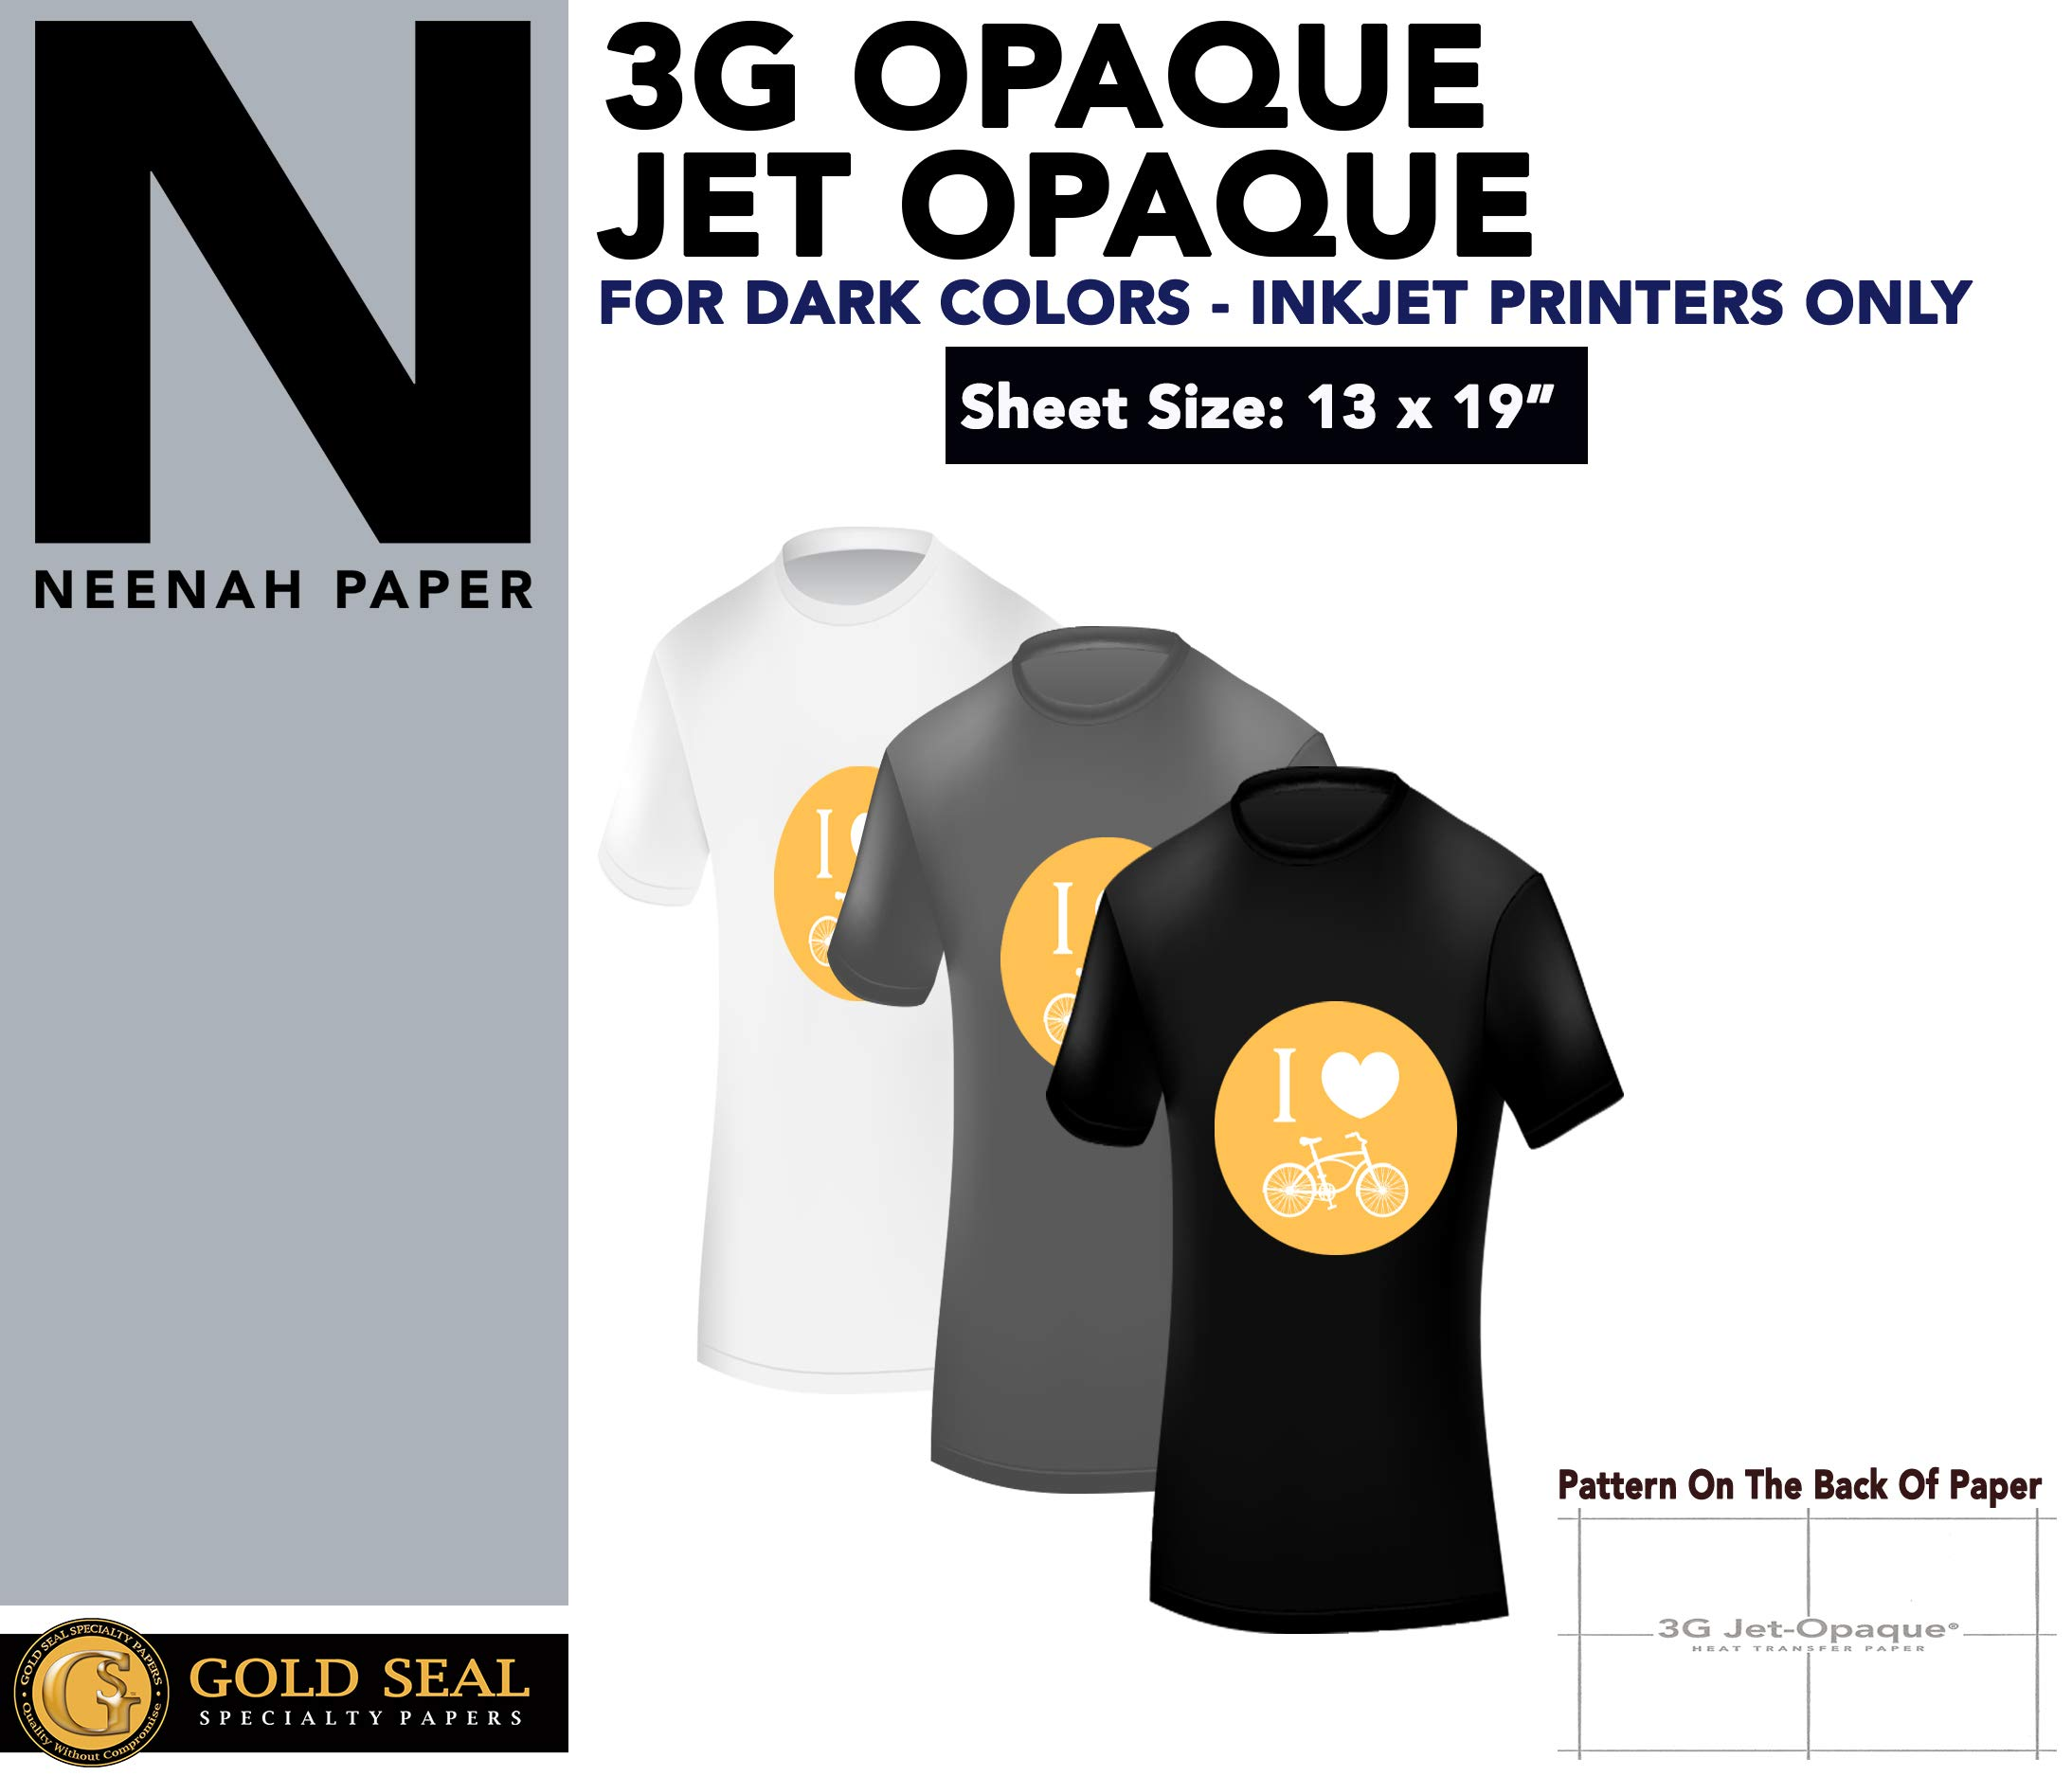 Iron ON Heat Transfer Paper 3G Jet Opaque 13 x 19'' Custom Pack 50 Sheets by Neenah (Image #2)